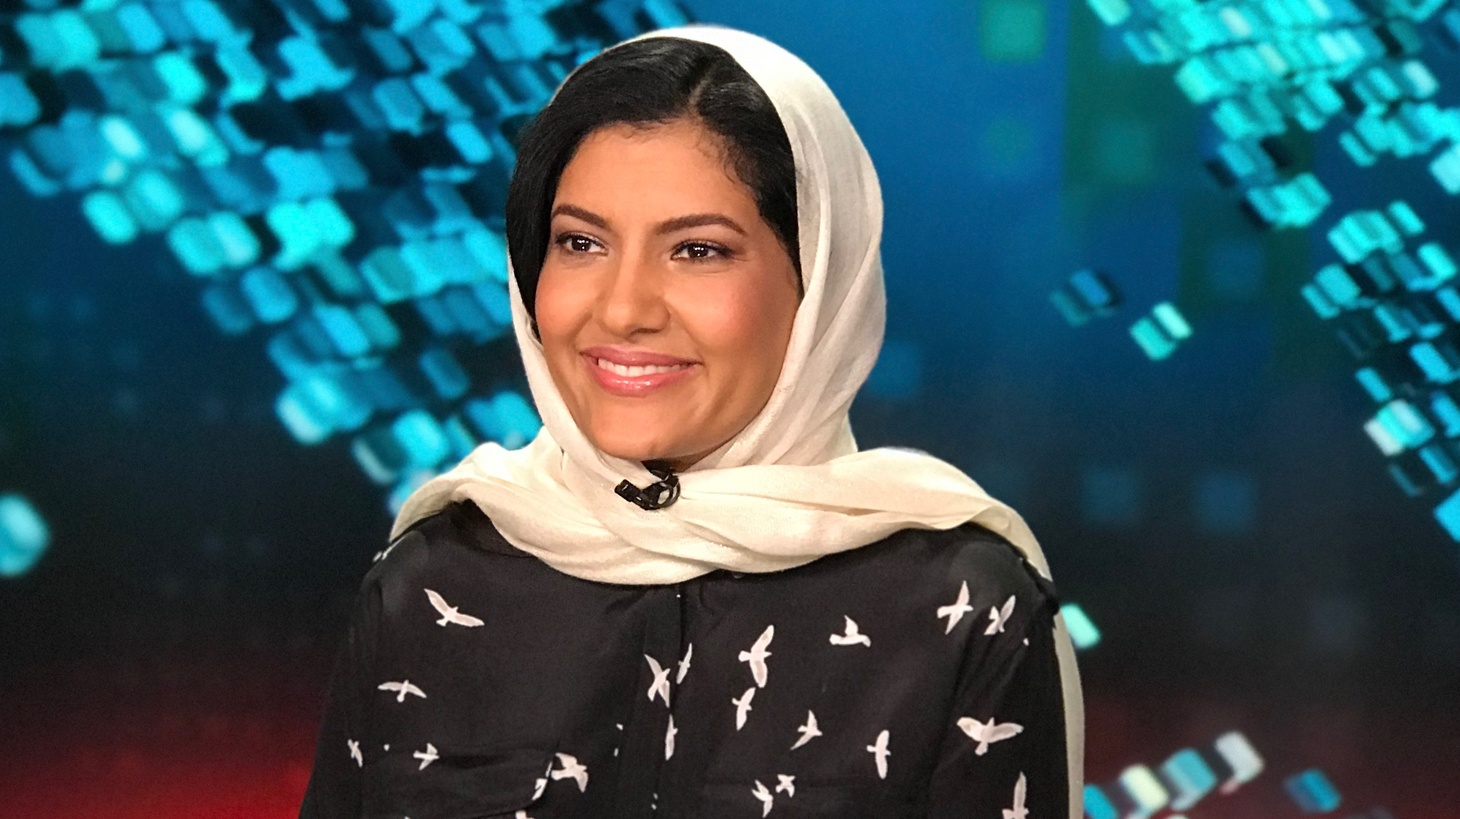 Princess Reema at CNN Headquarters in Los Angeles on June 25th, 2018.